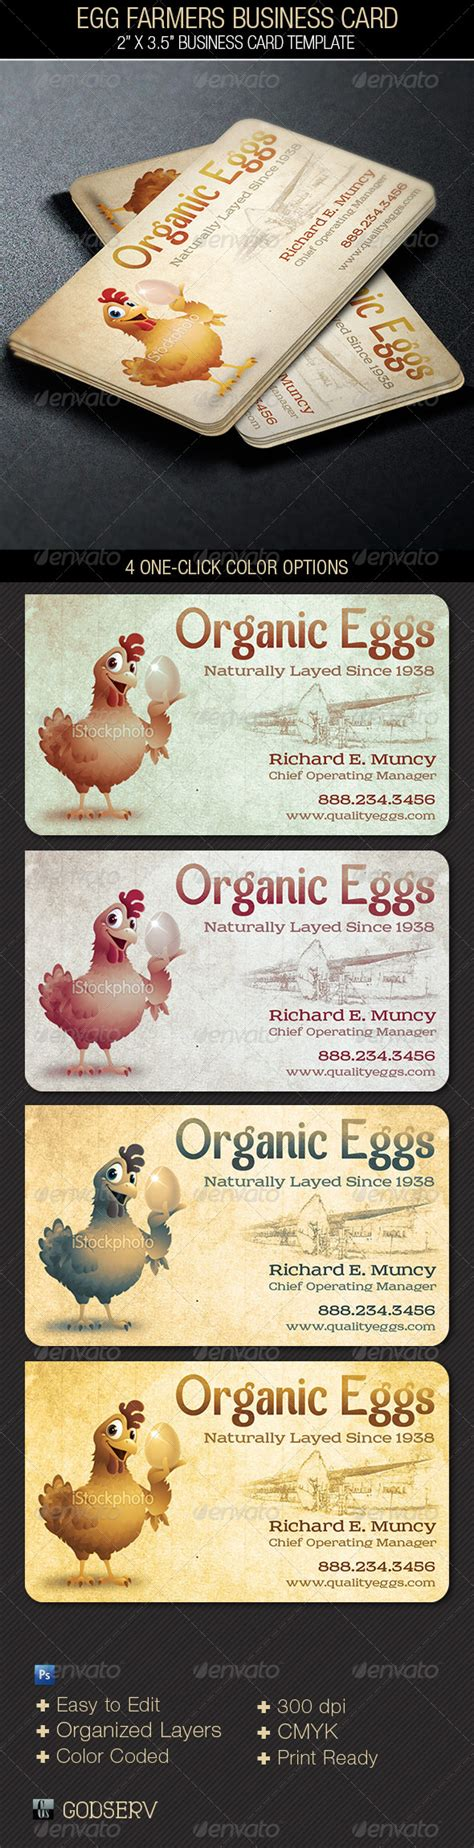 farmers business card templates print templates egg farmers business card graphicriver